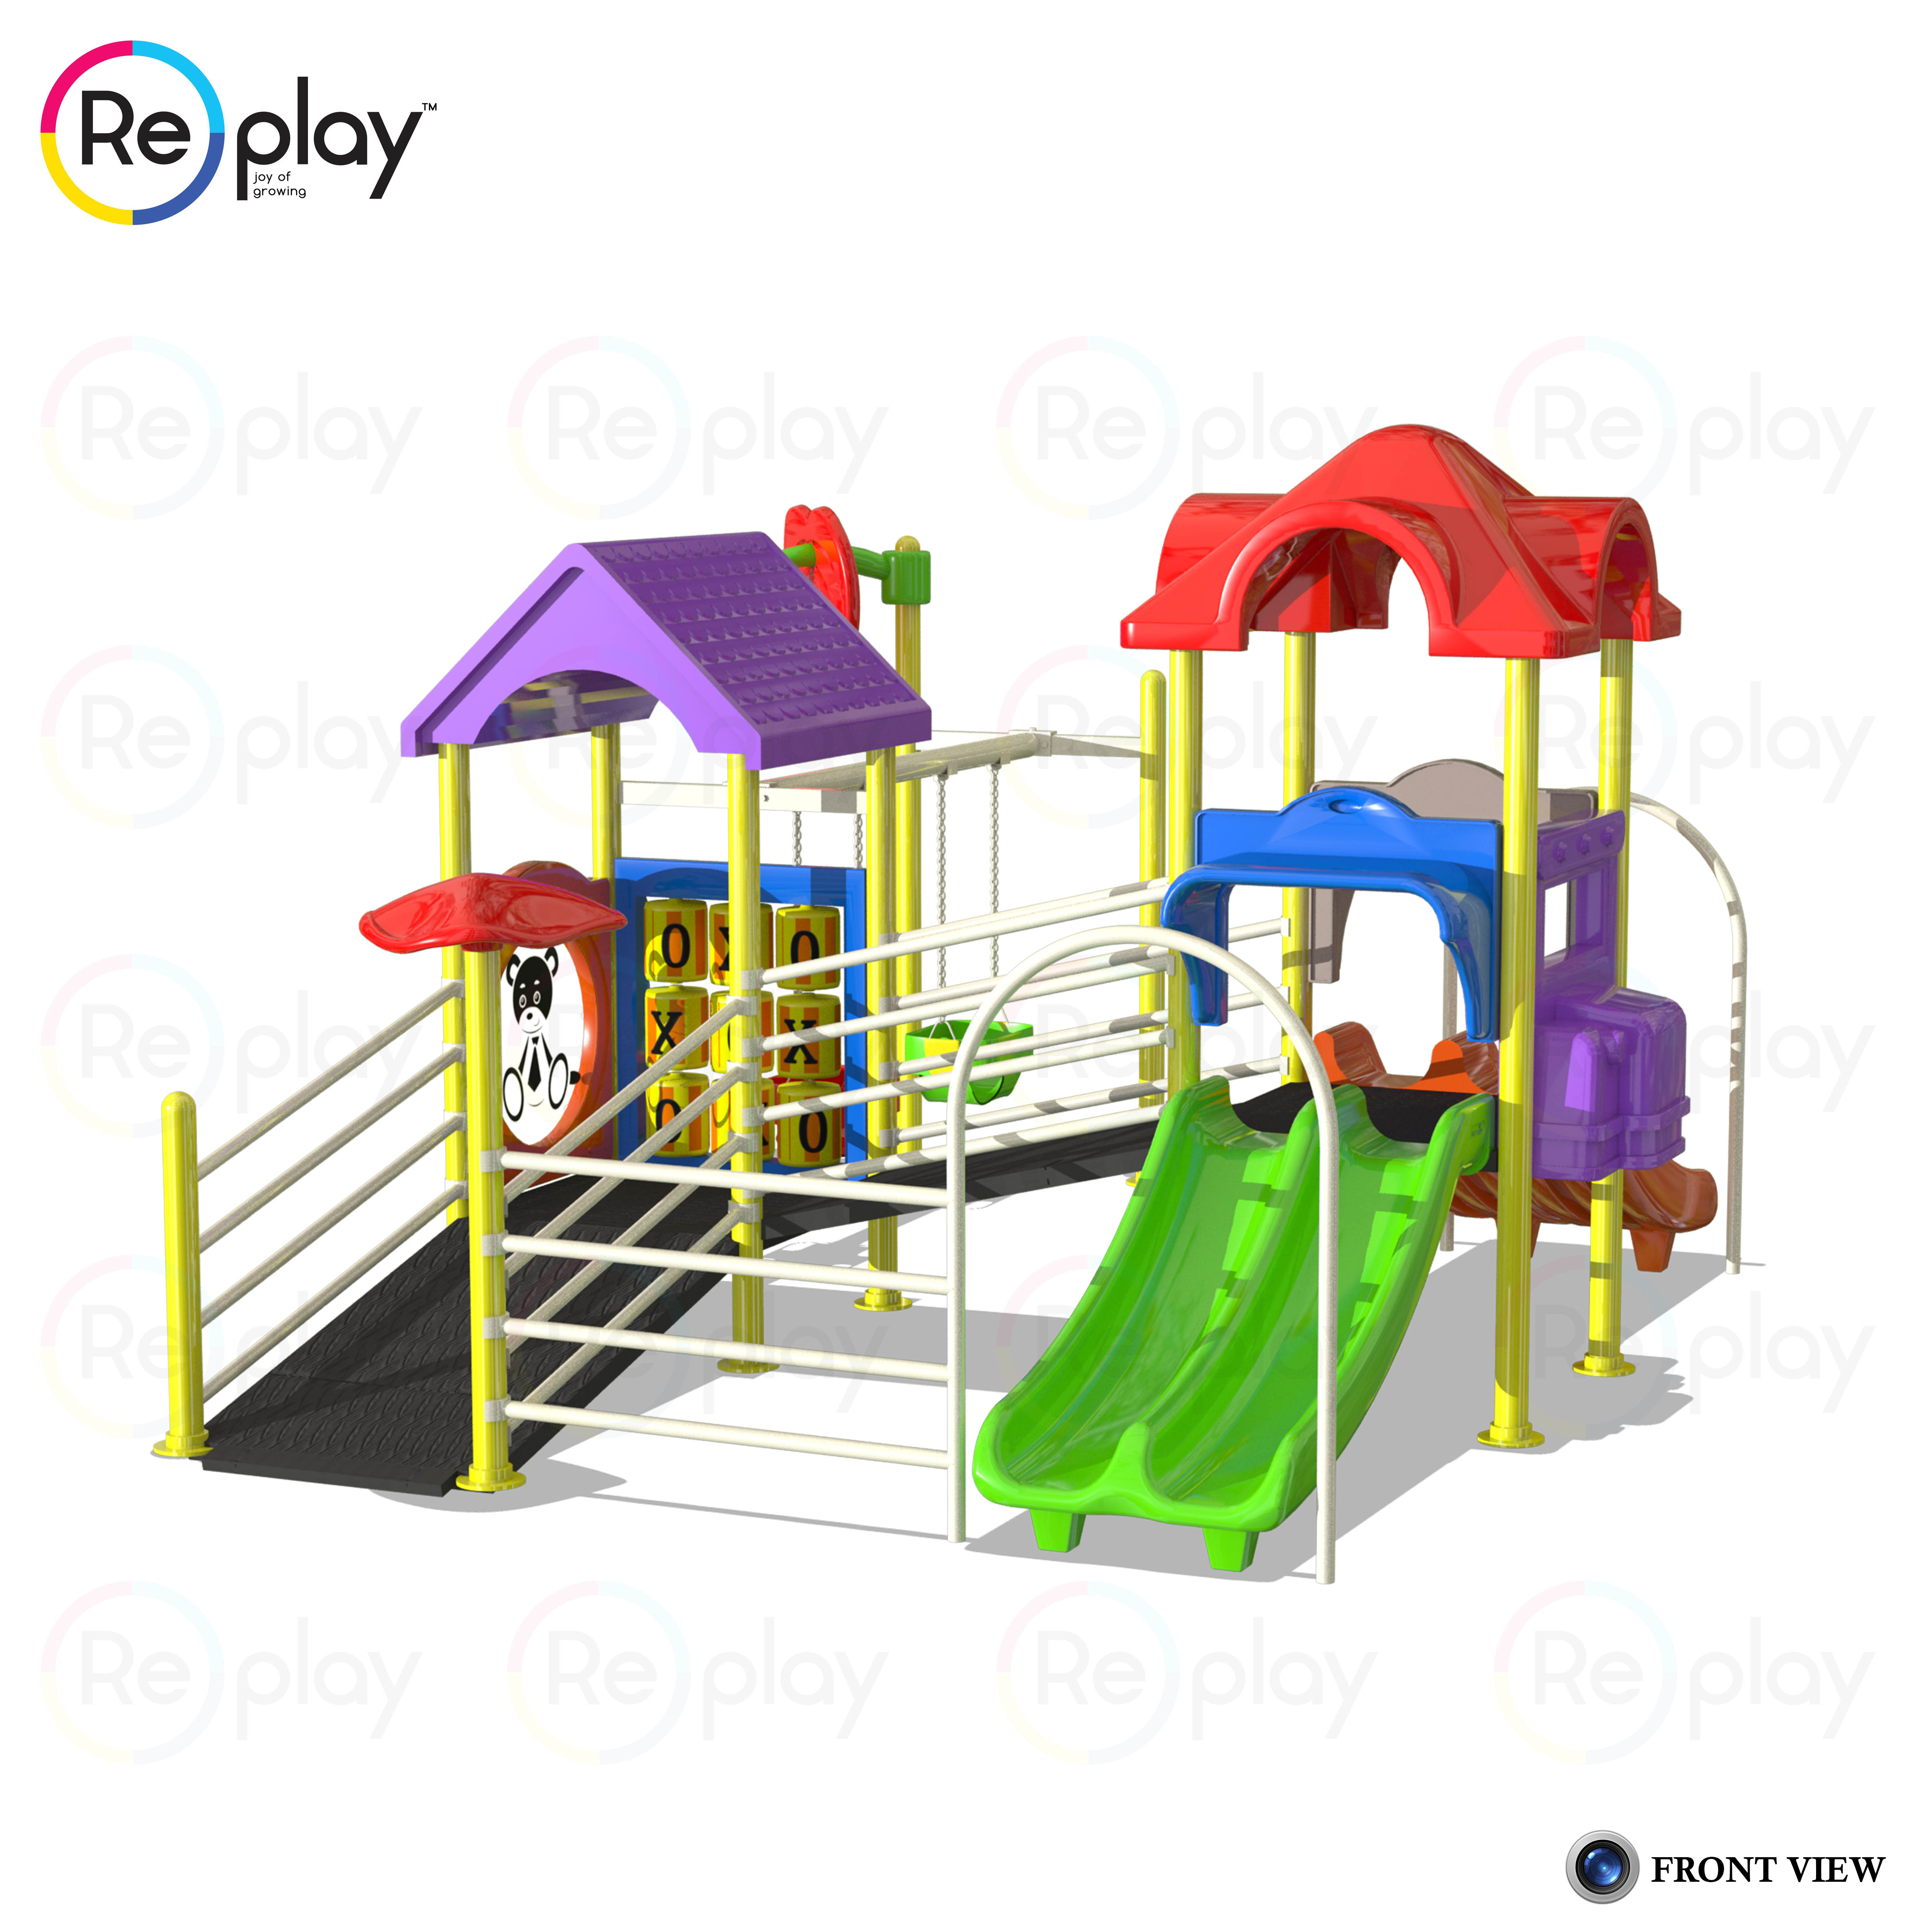 Replay Specially-abled Playground Equipment5